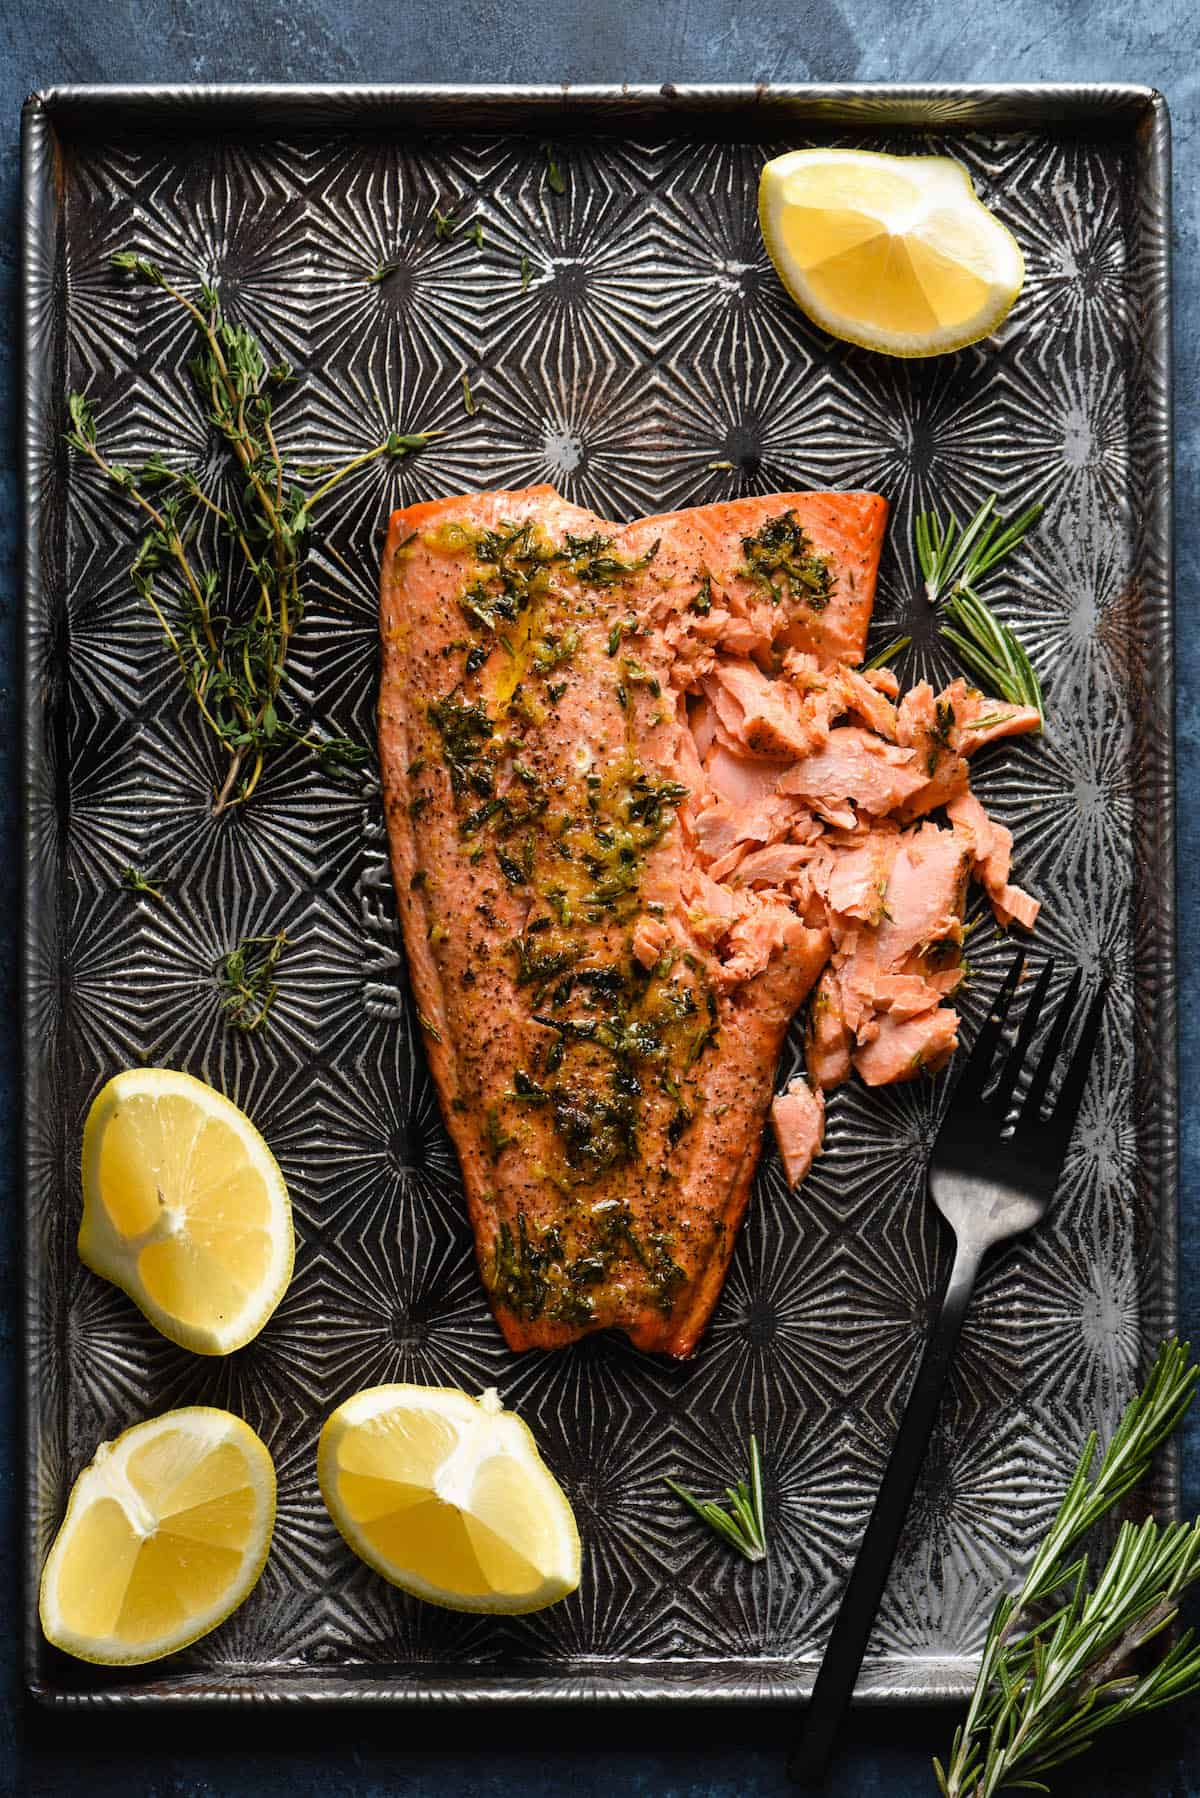 Large fillet of sockeye salmon being flaked with fork on top of star printed baking sheet. Lemon wedges and fresh herbs garnish the scene.